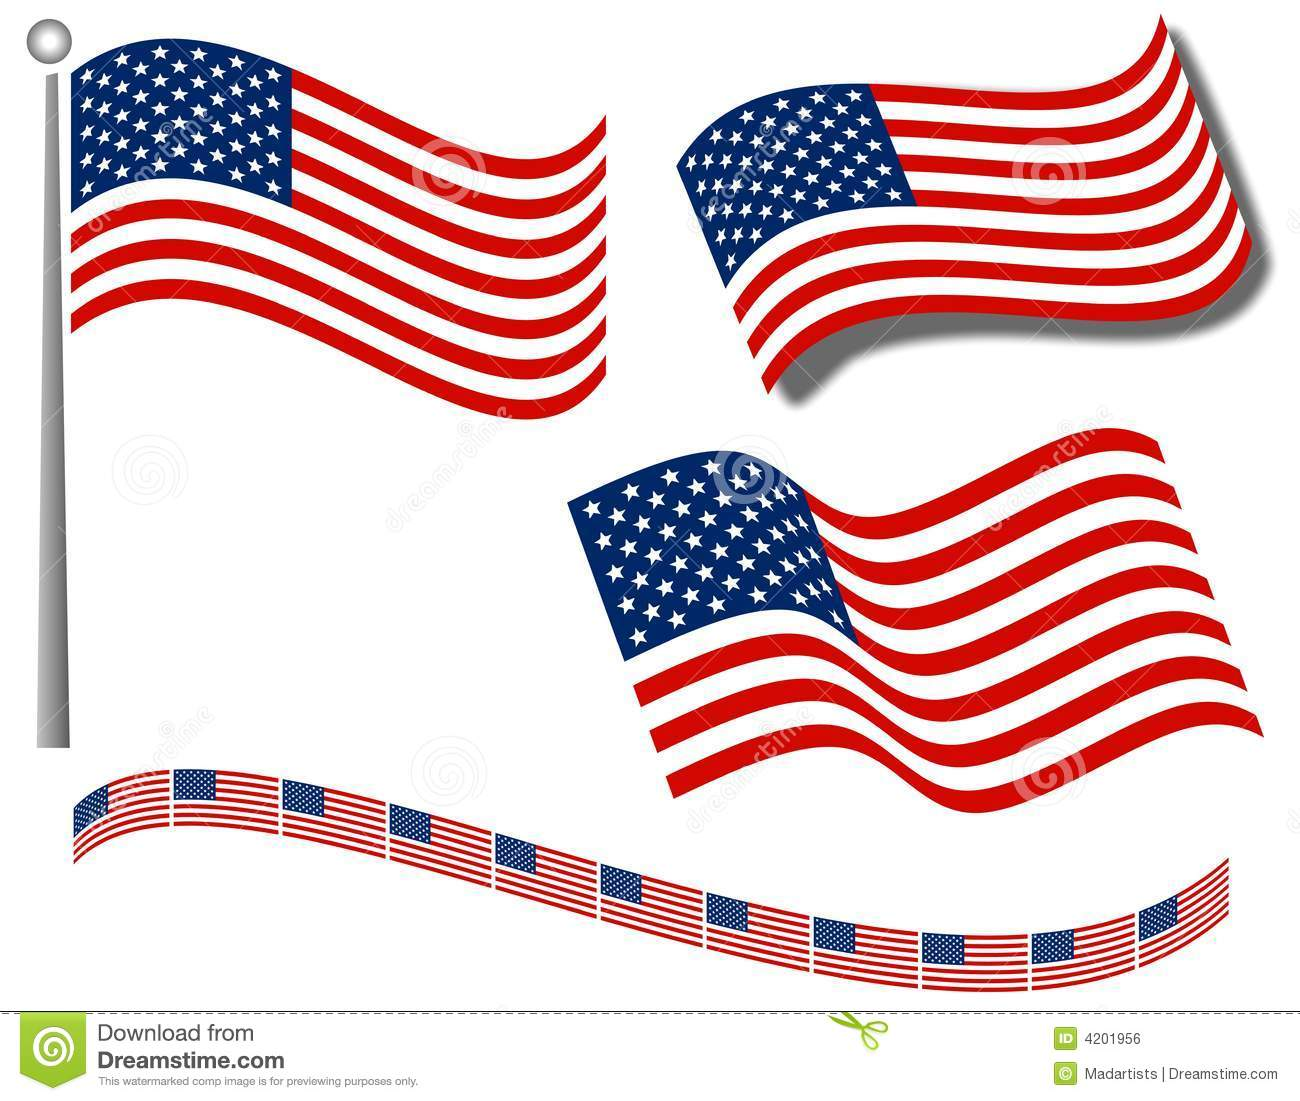 American Flags Clip Art And Divider Royalty Free Stock Image ...